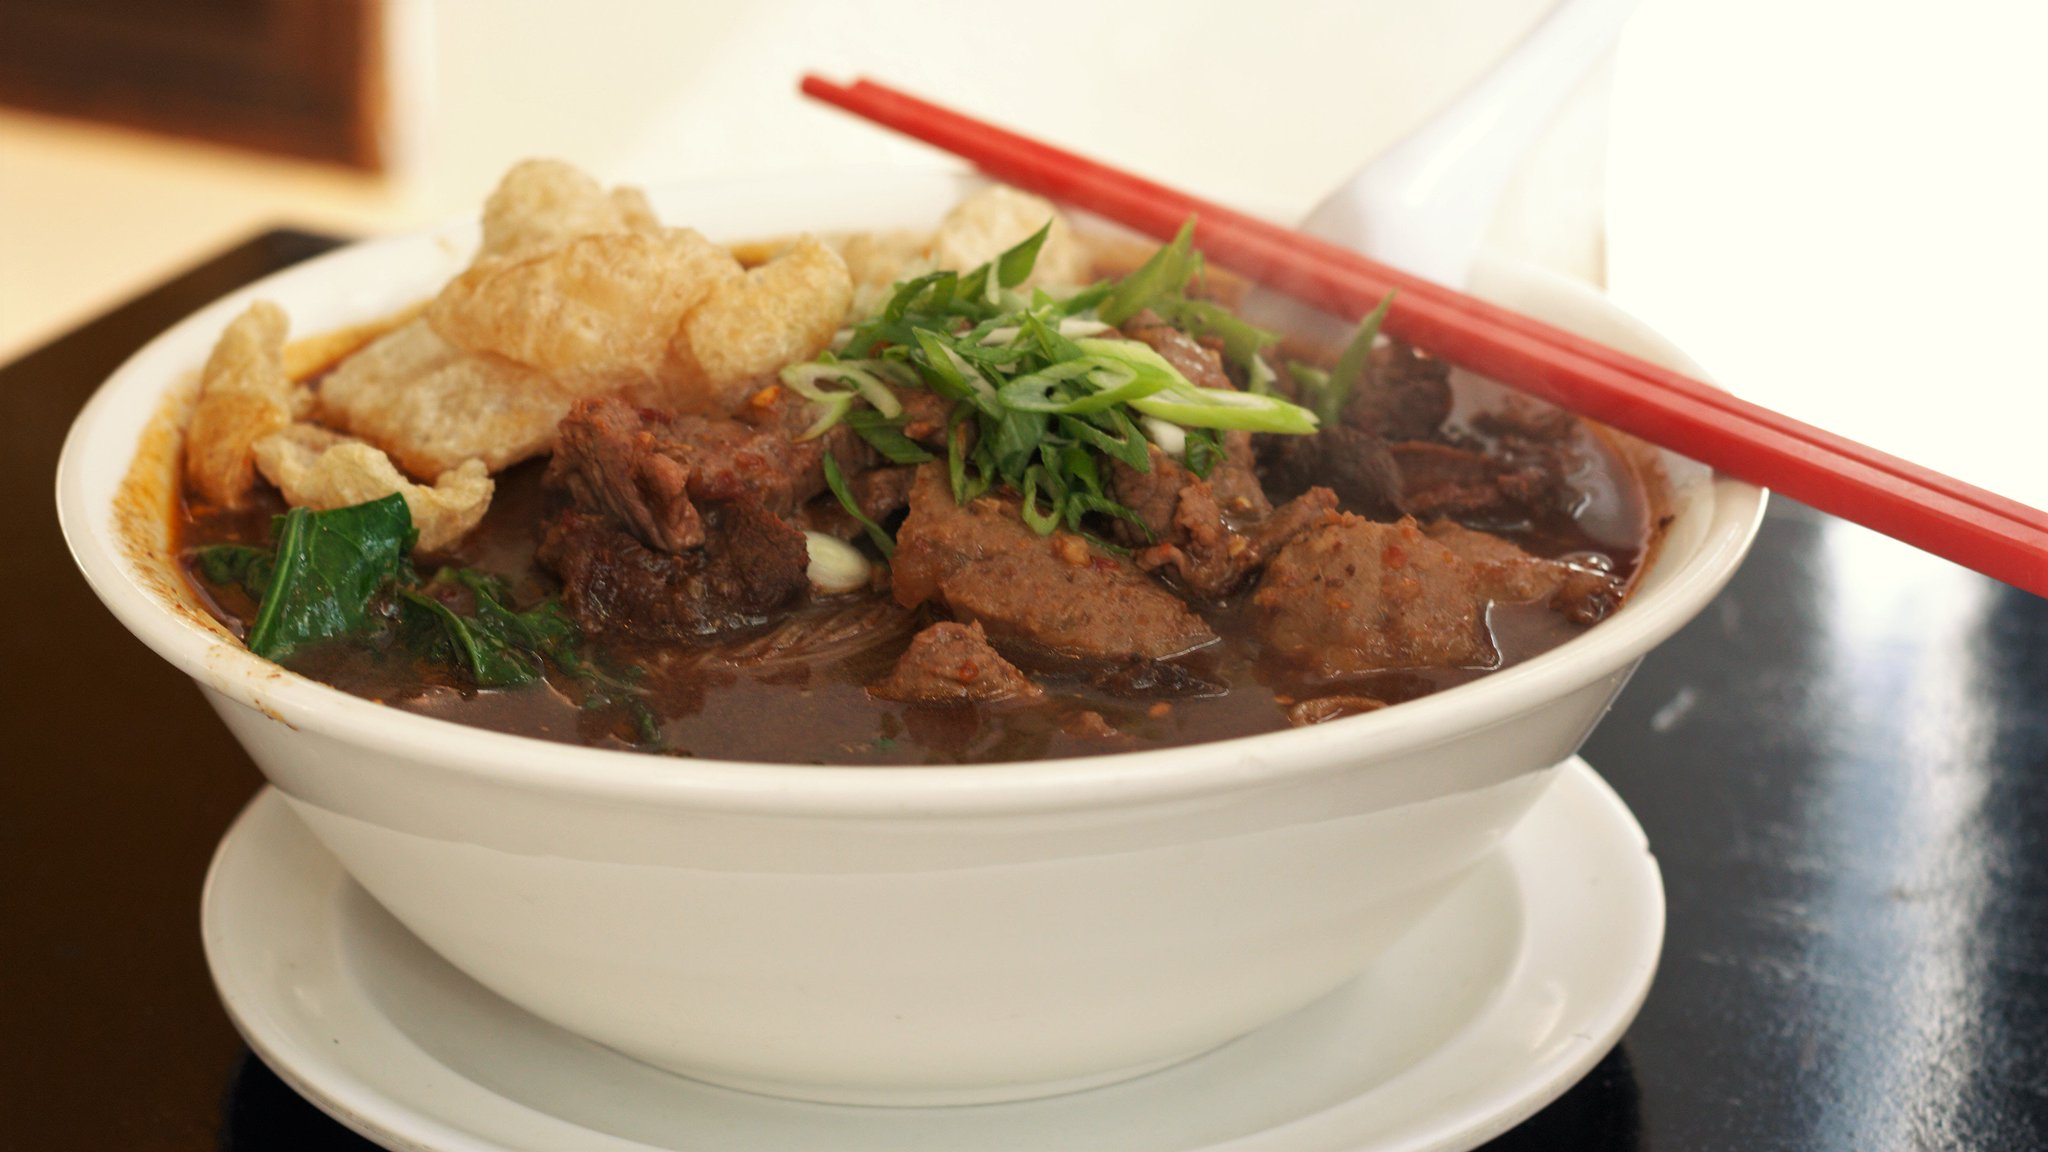 Nick Kindelsperger On Twitter I Love Ramen You Love Ramen But Let S Try Some Other Asian Noodle Soups Okay Start With Boat Noodles From Andy S Thai Kitchen Spicy Beef Noodle Soup From